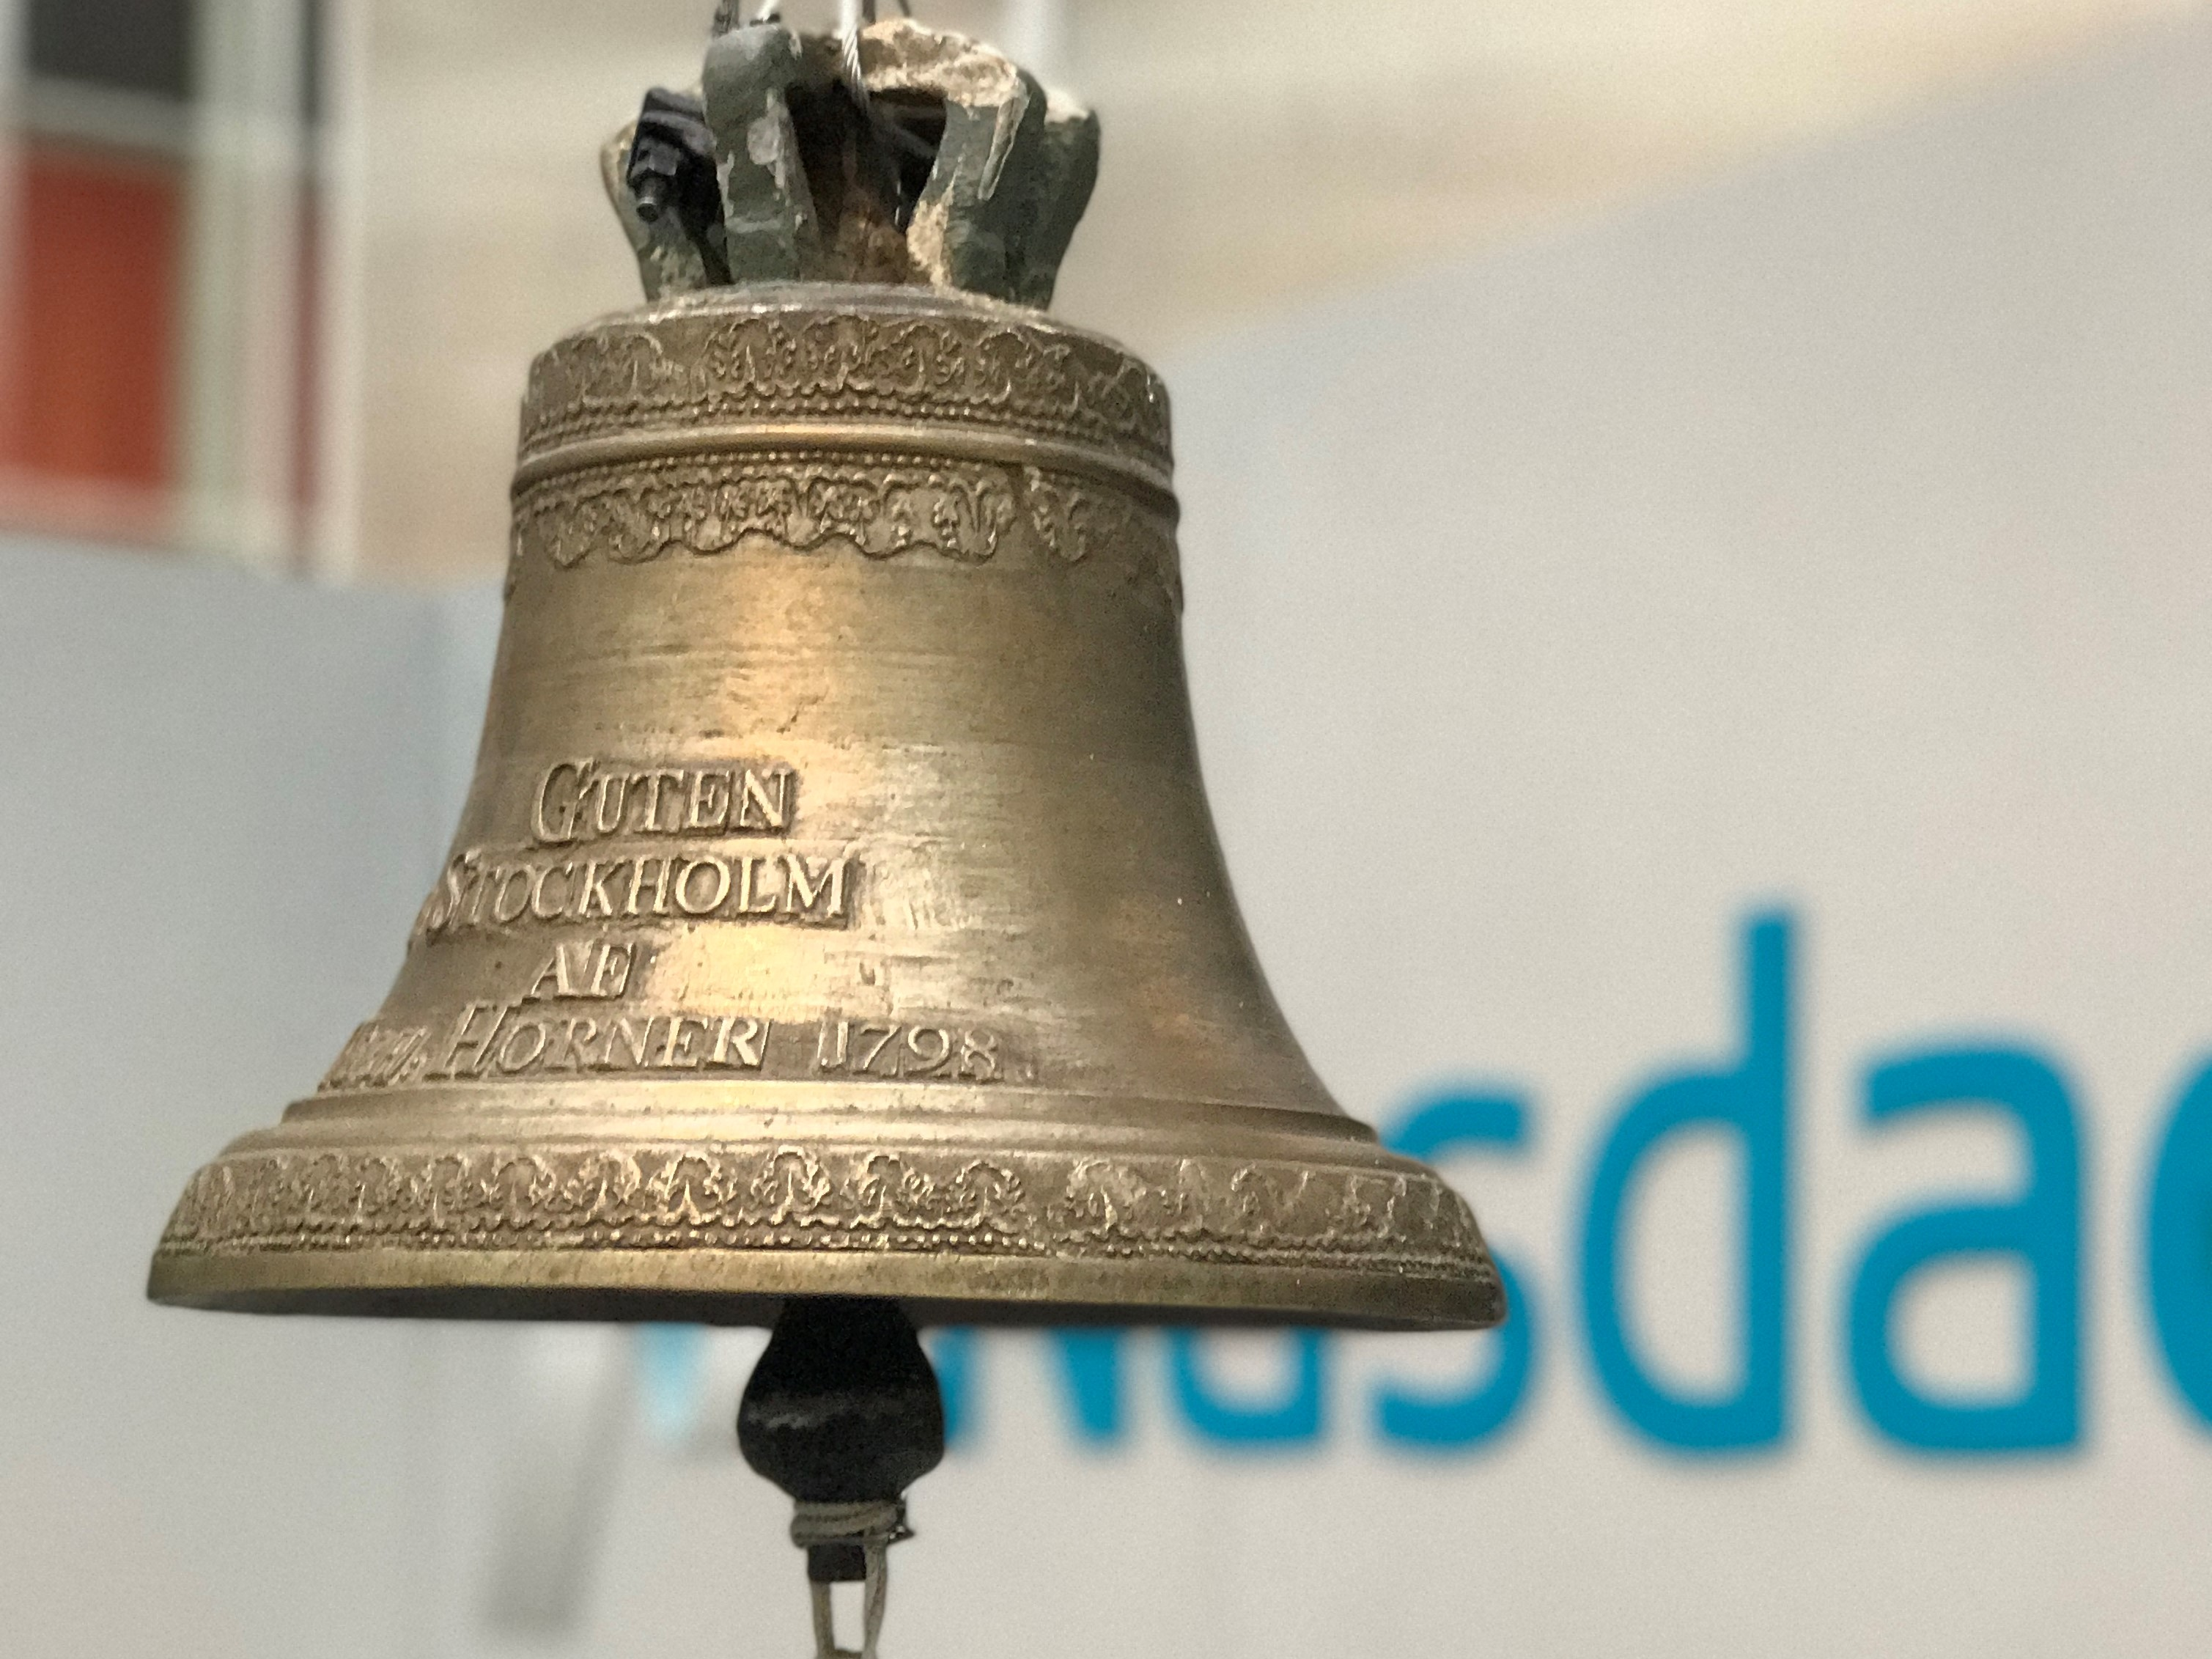 Picture of the Nasdaq First North Bell in Stockholm, Sweden.